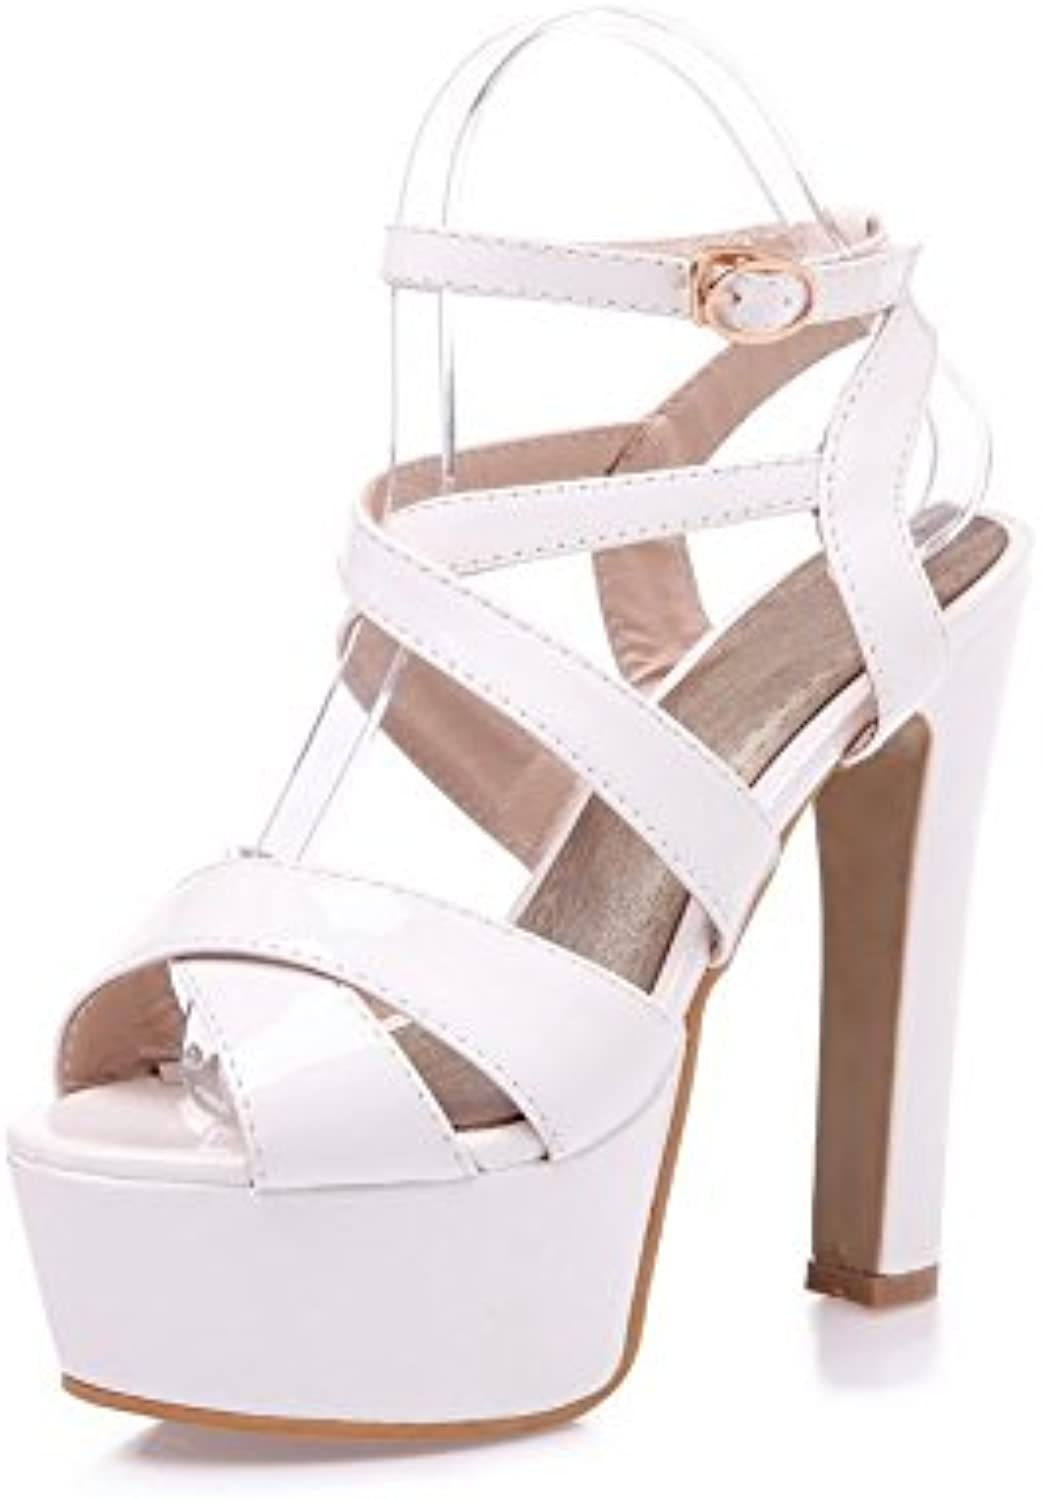 Adee Ladies cross-body-strap high-heels Poliuretano Sandalias -